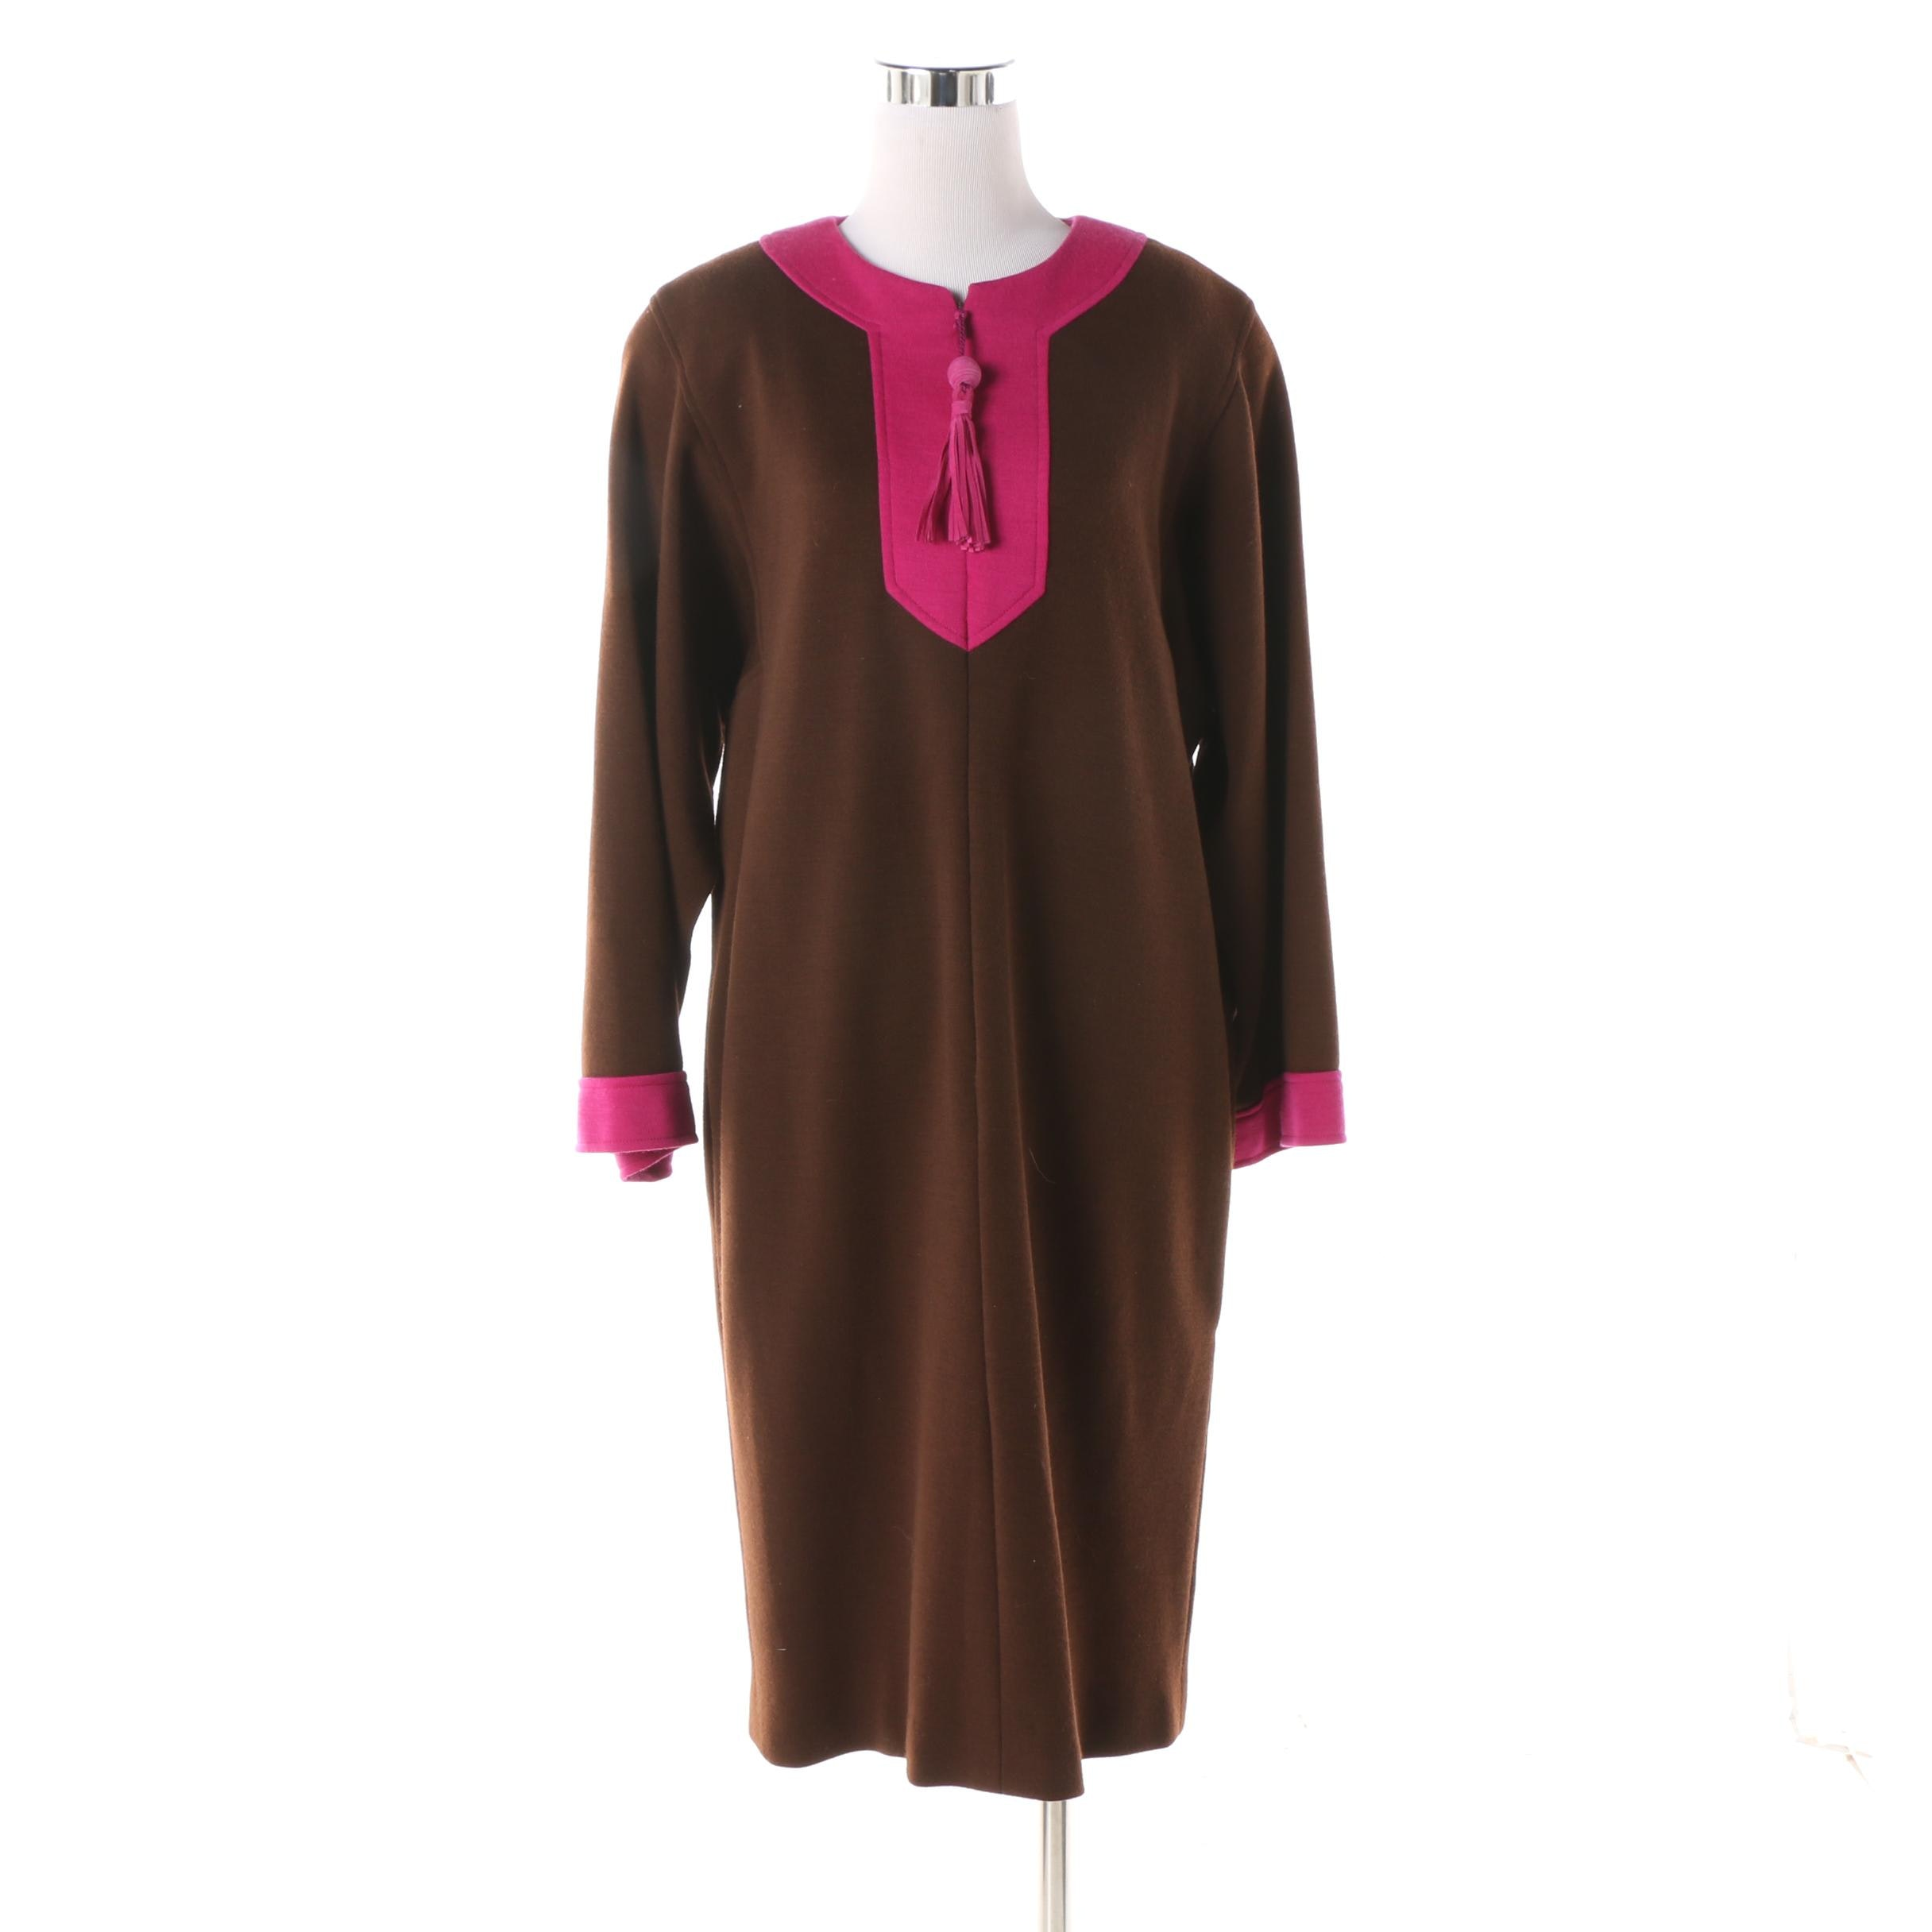 Women's 1980s Oscar de la Renta Brown and Fuchsia Tunic-Style Shift Dress